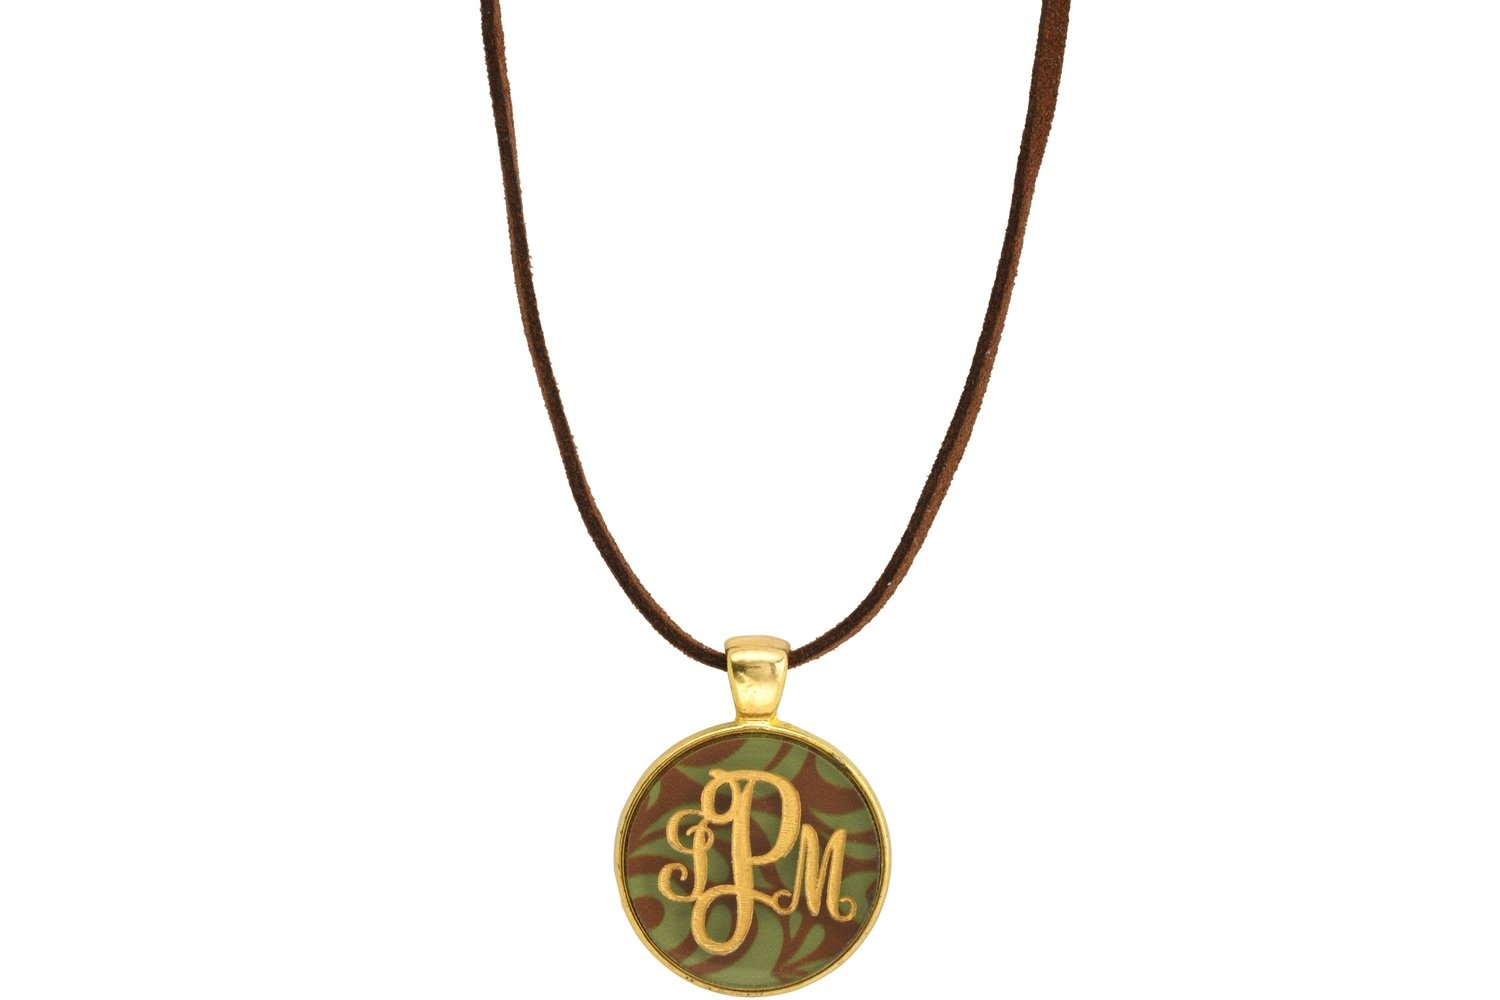 Classic Style Bezel Monogram Pendant with Suede Leather Cord Necklace